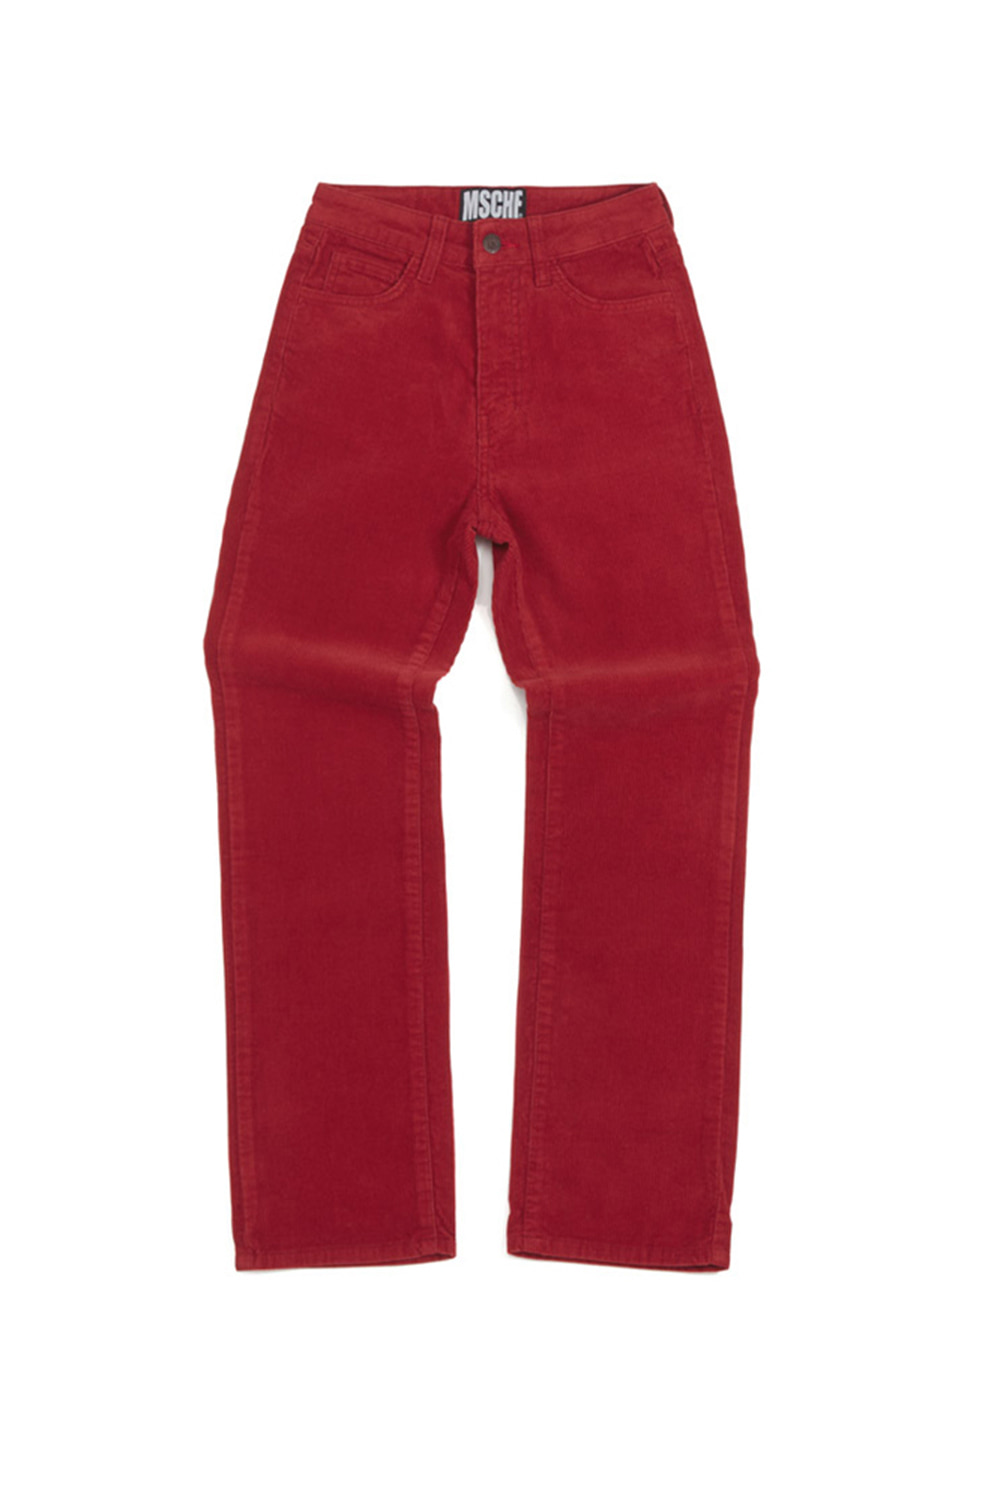 CORDUROY STRAIGHT PANTS_red